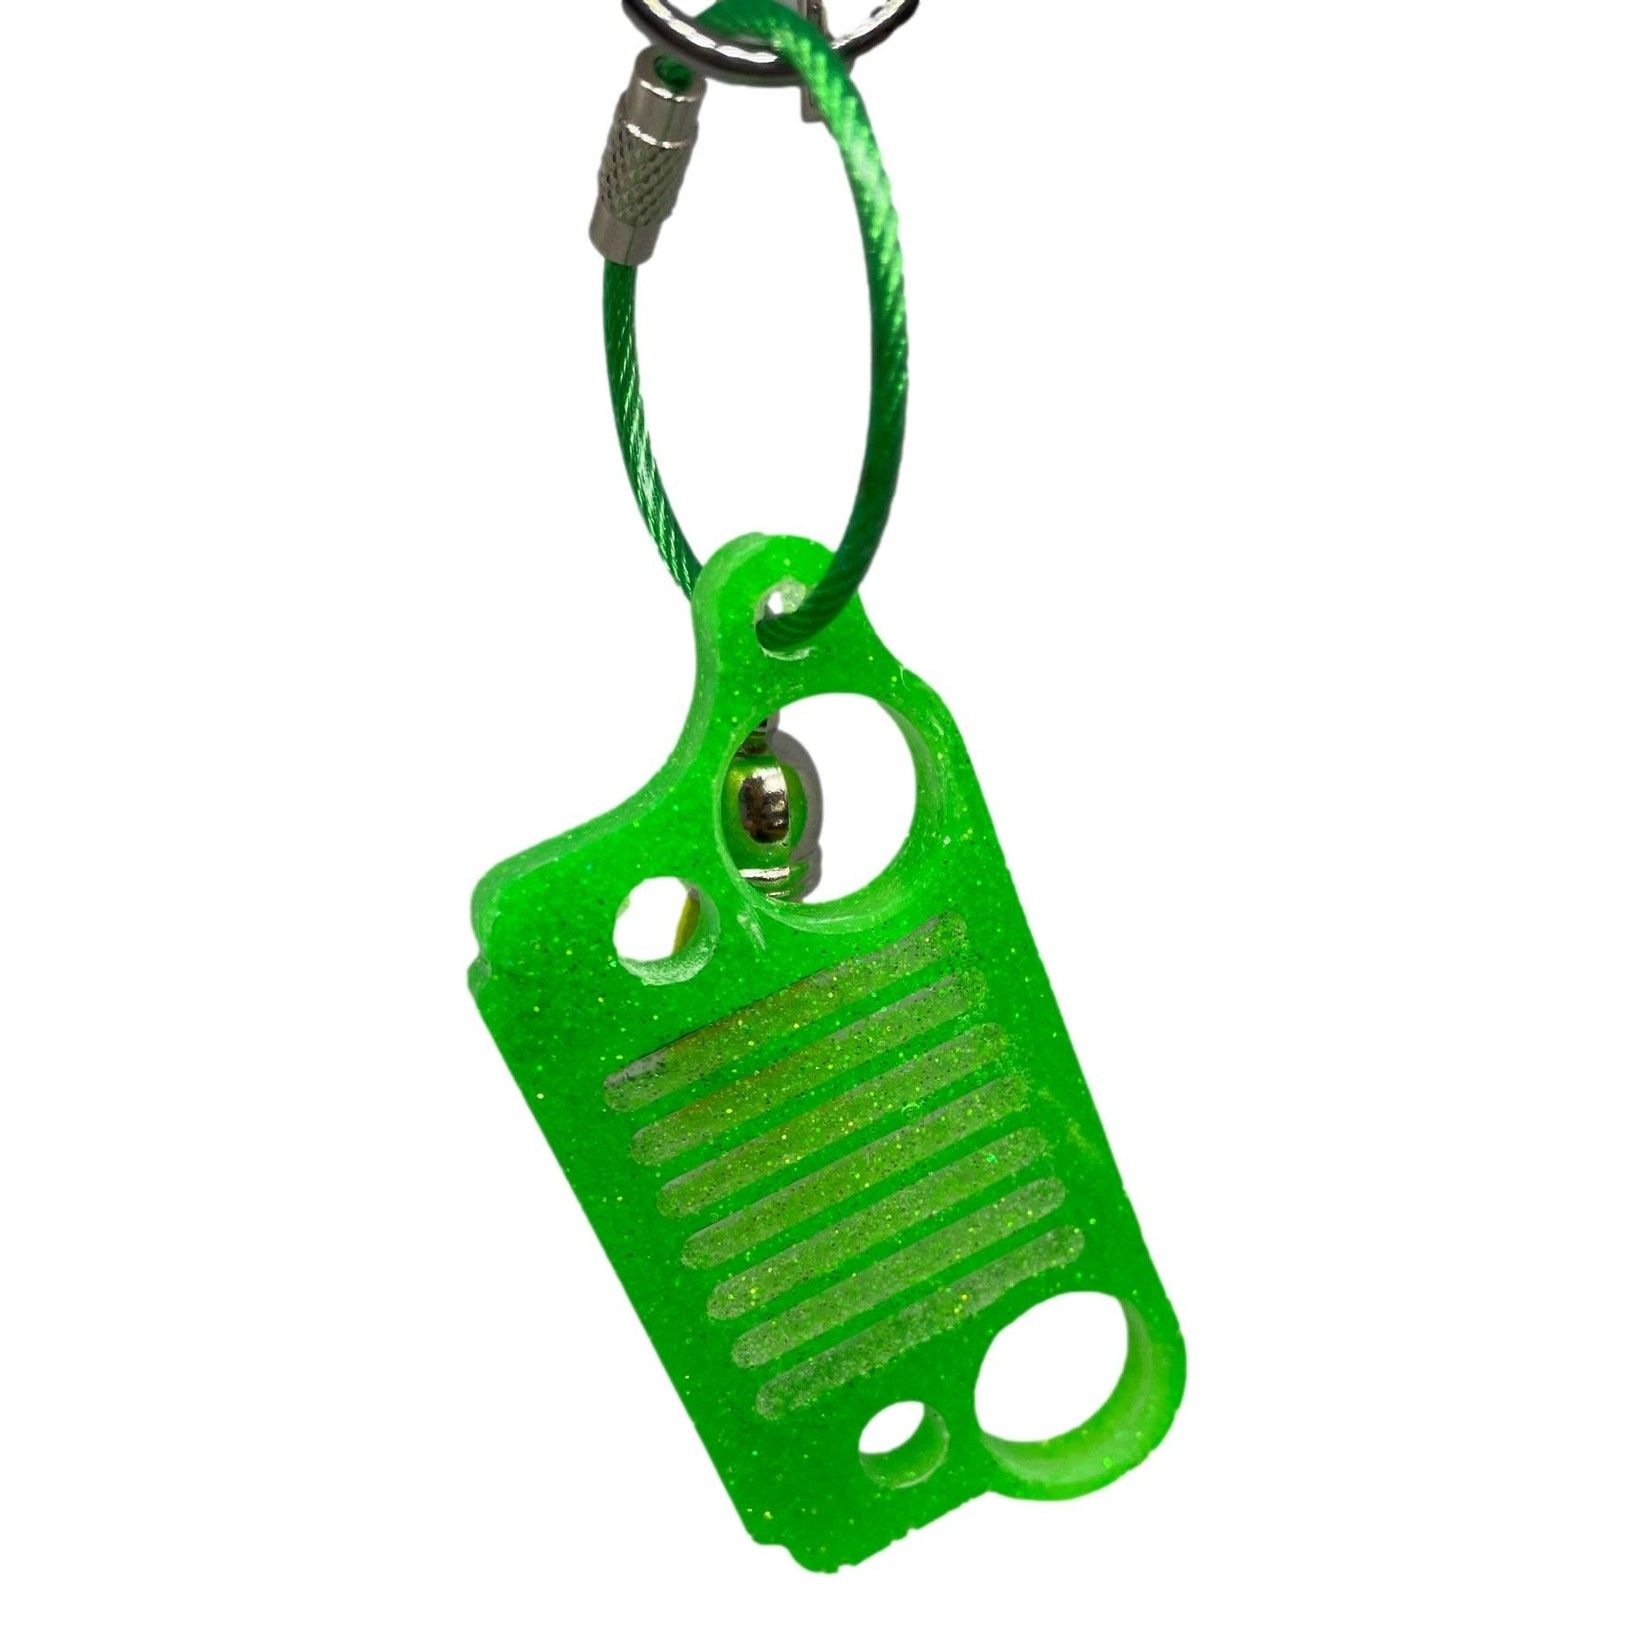 East Coast Sirens Lime Green Jeep Grill Key Chain